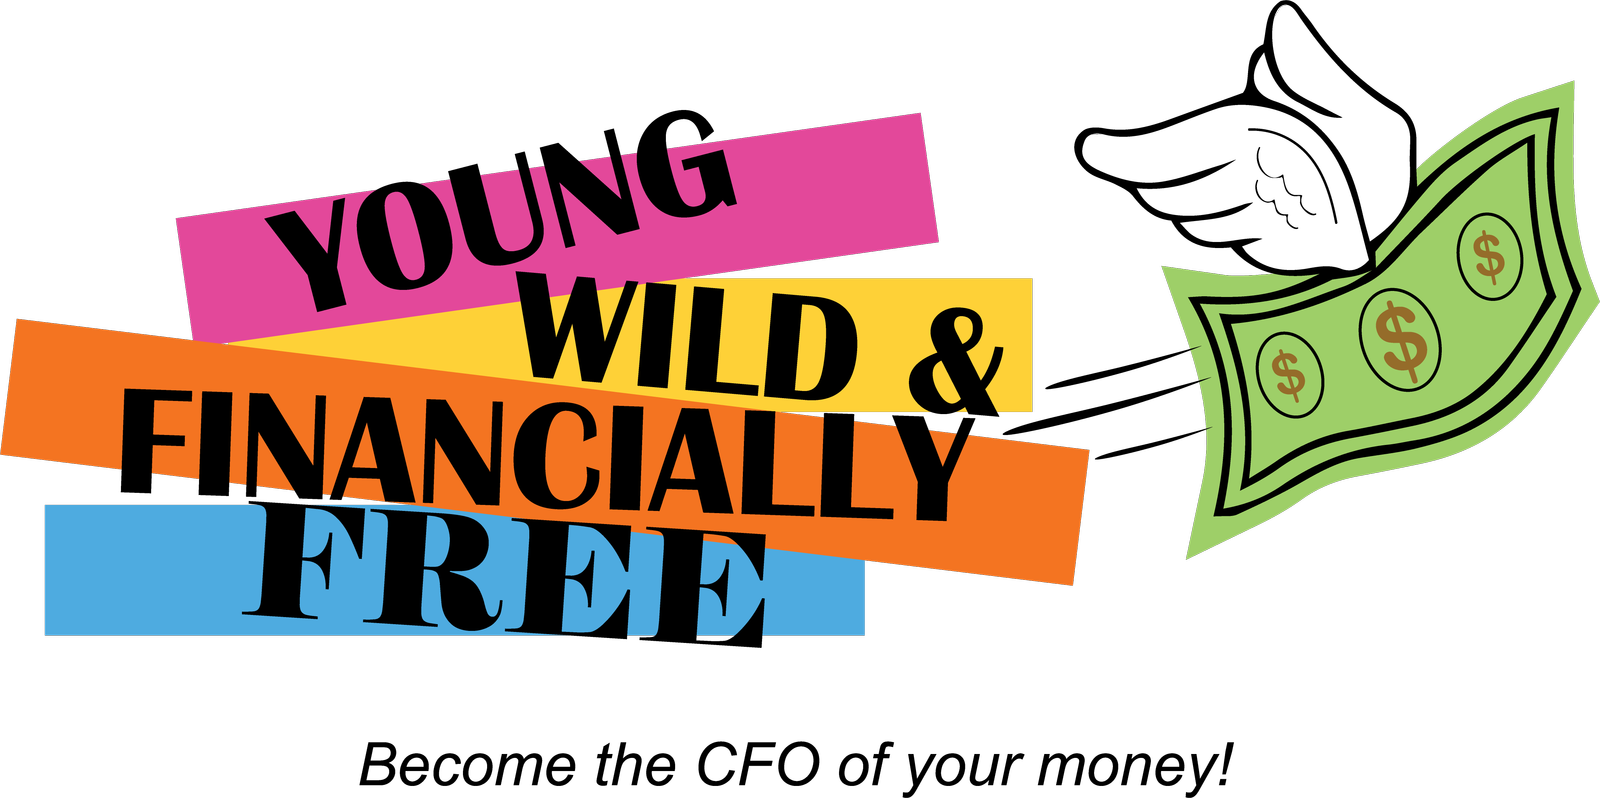 Young wild financially free. Freedom clipart financial freedom